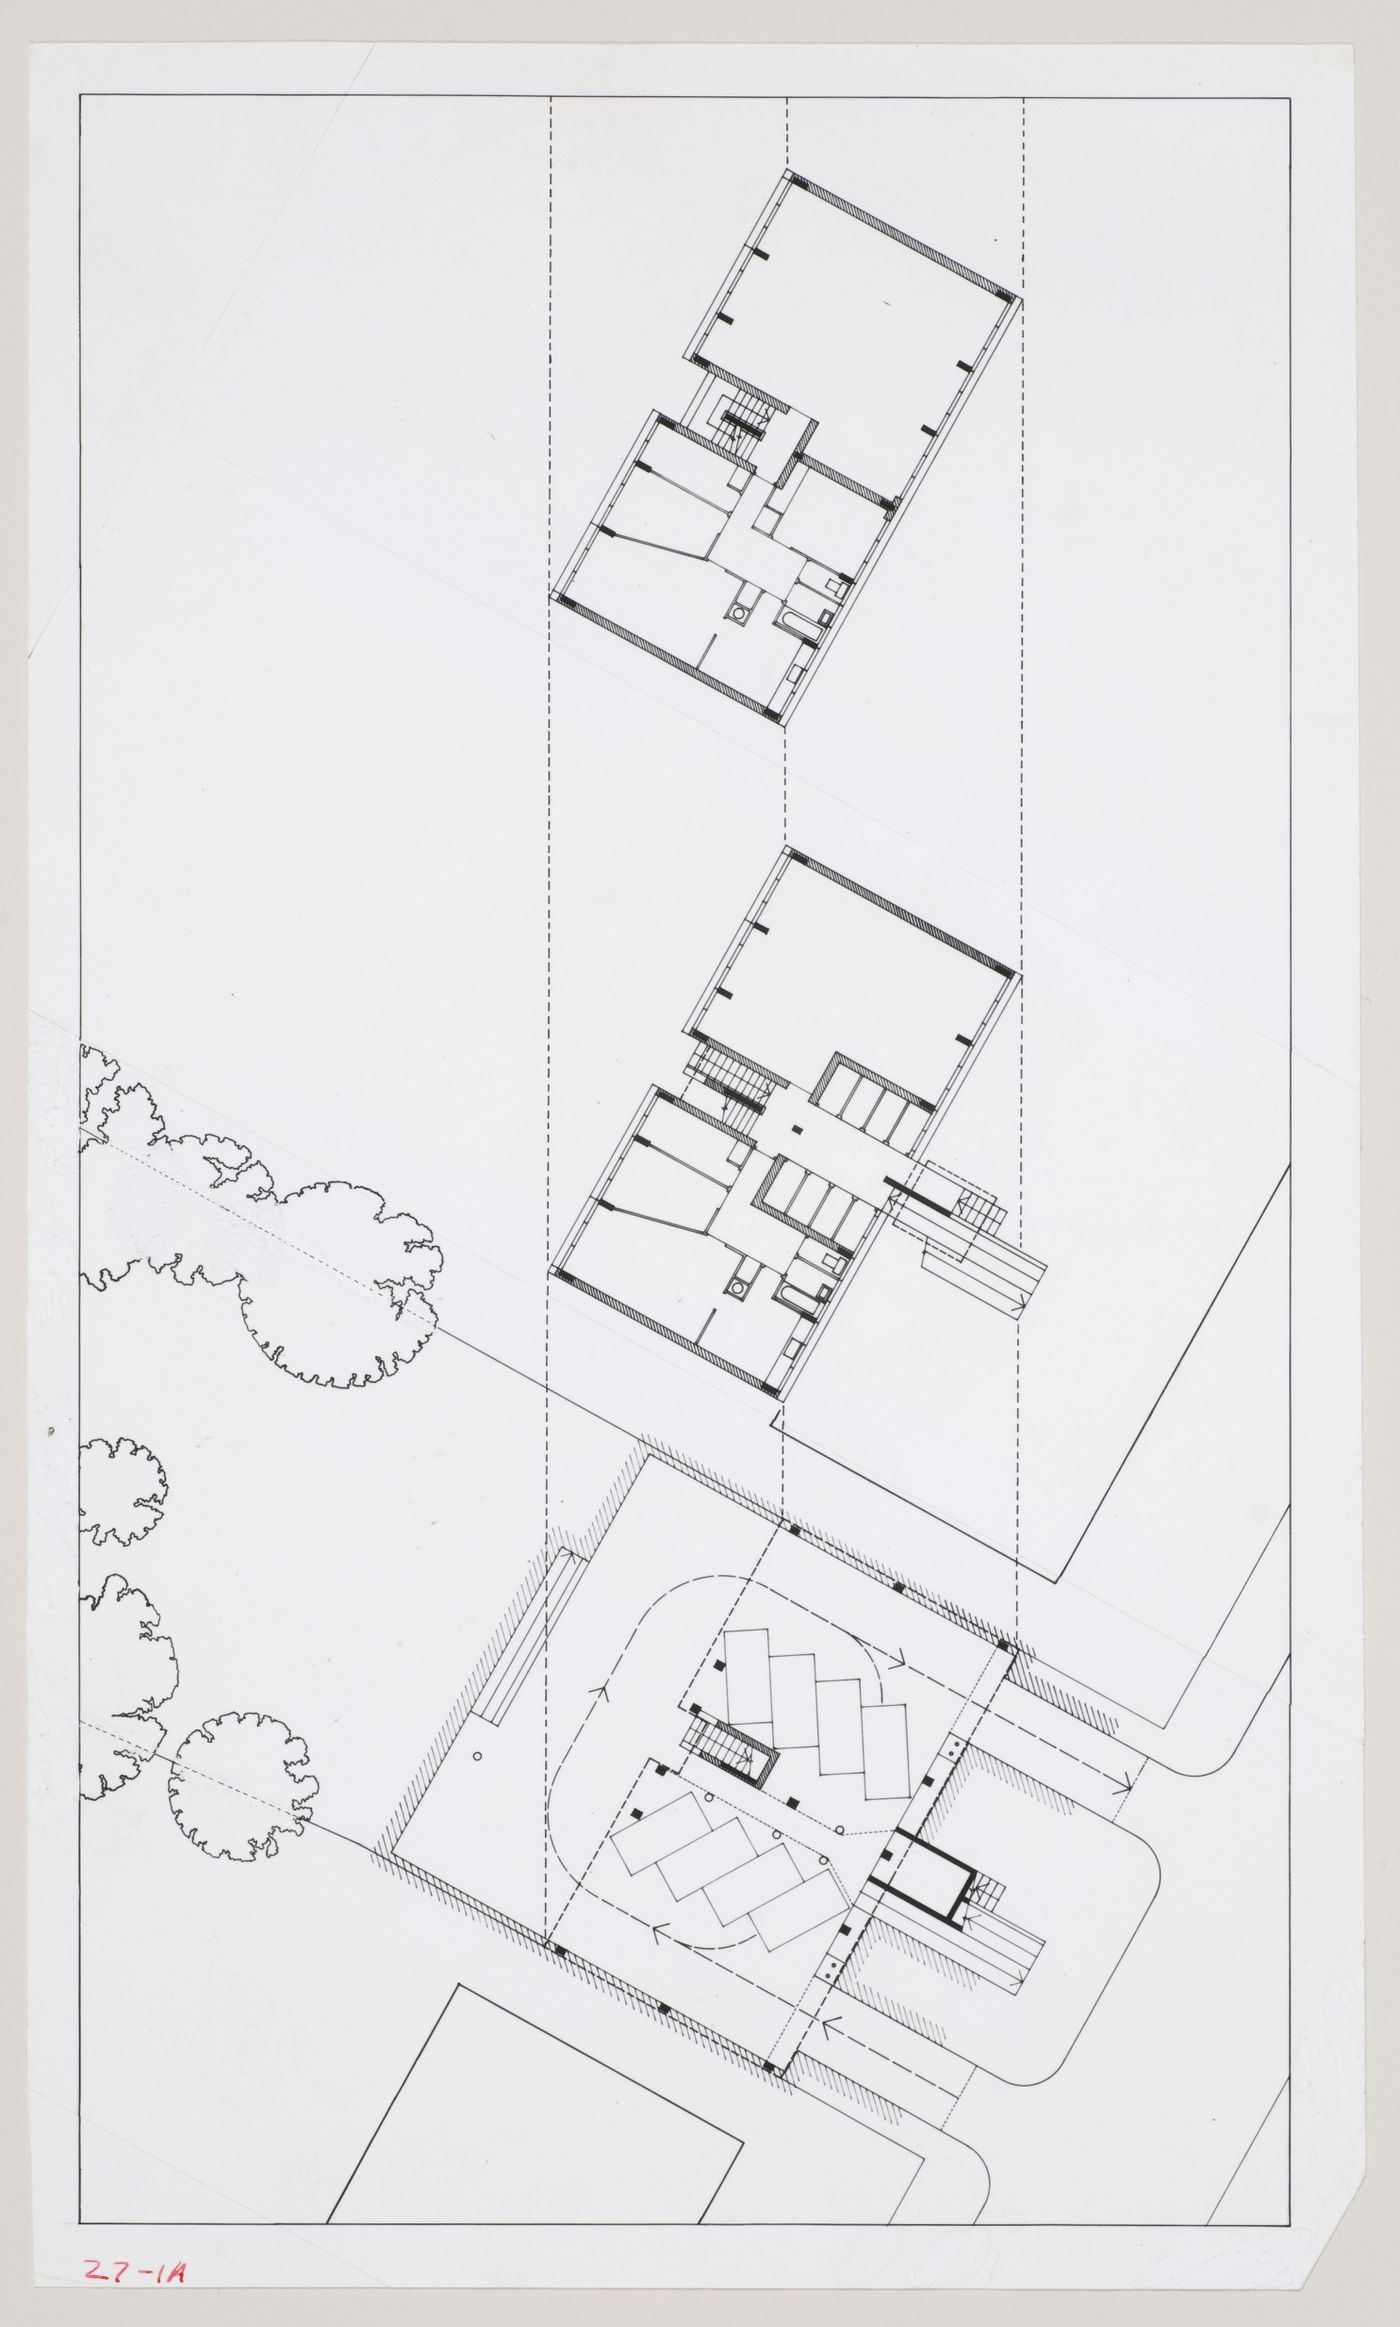 Flats at Camden Town, London, England: photograph of plans